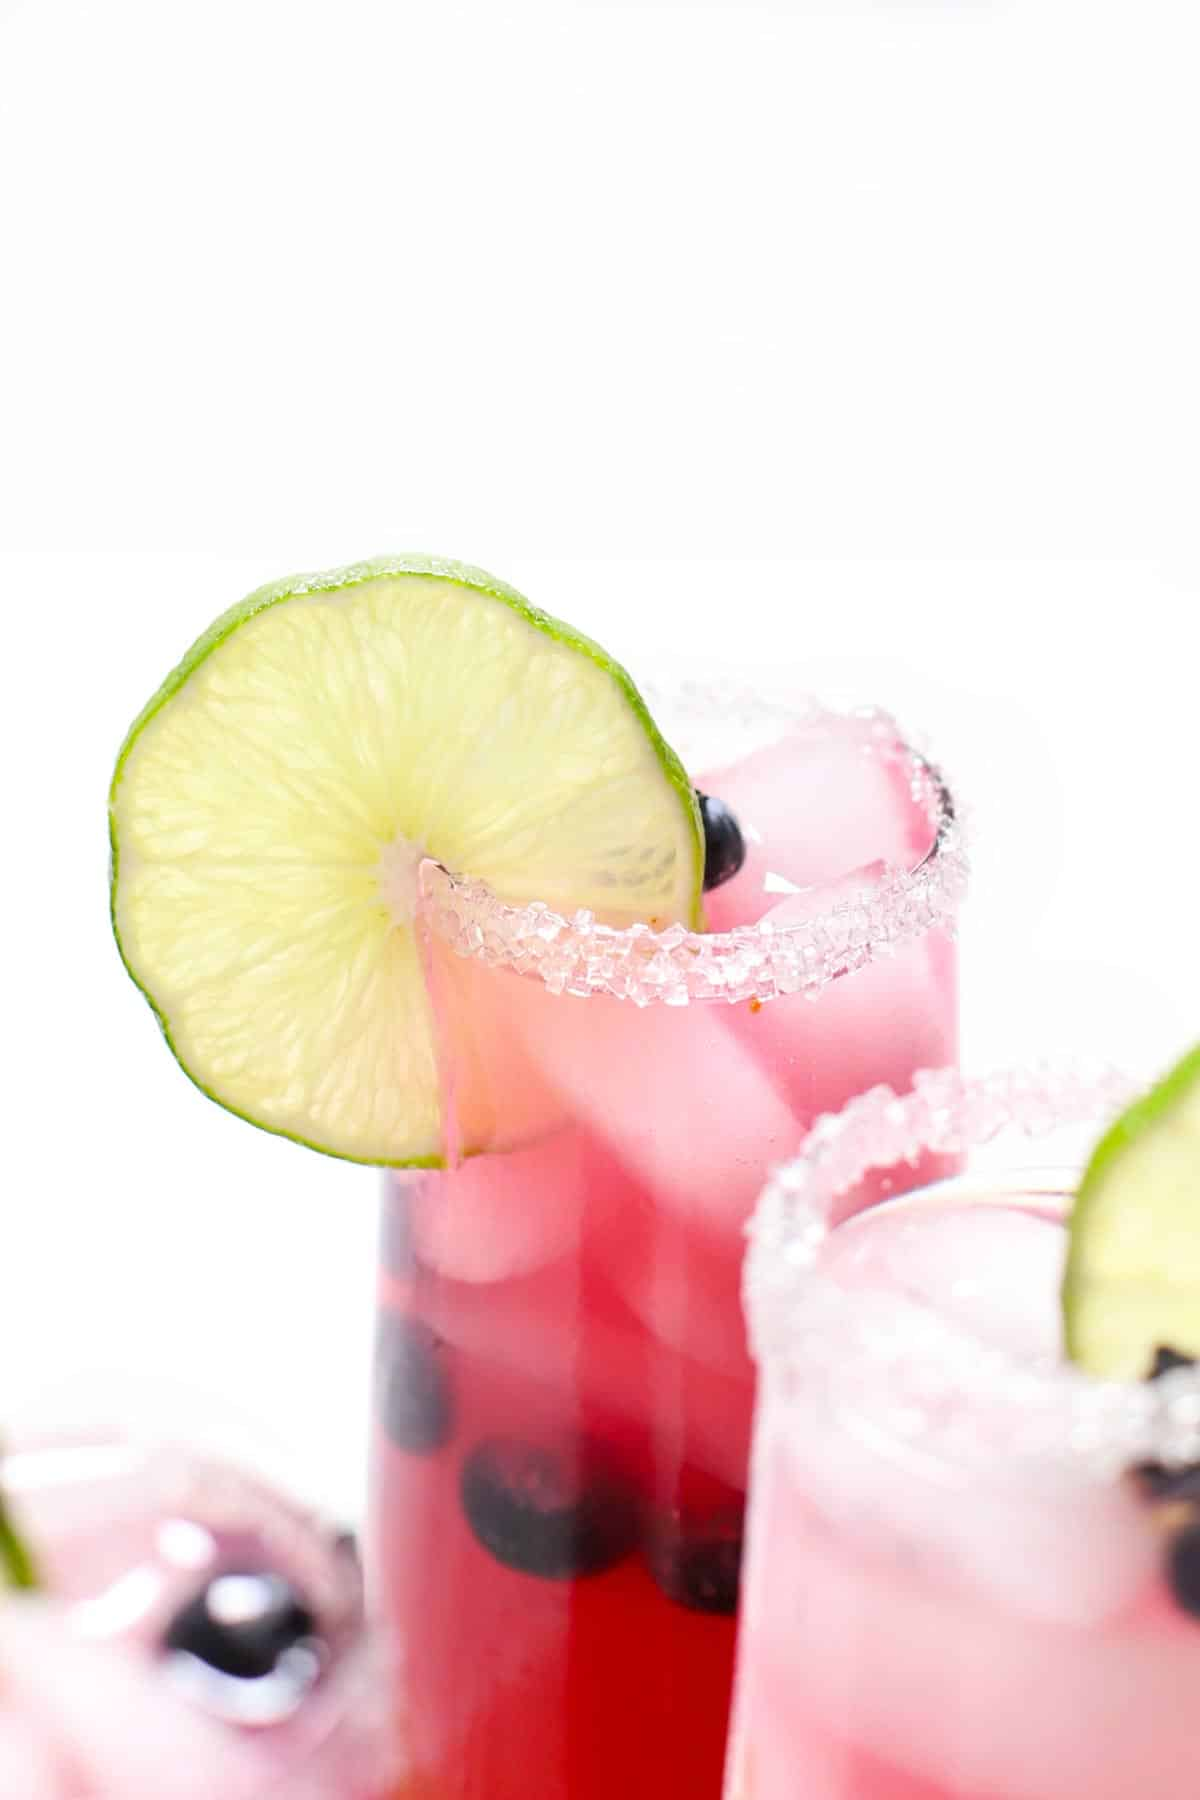 Close-up view of a blueberry margarita over ice.